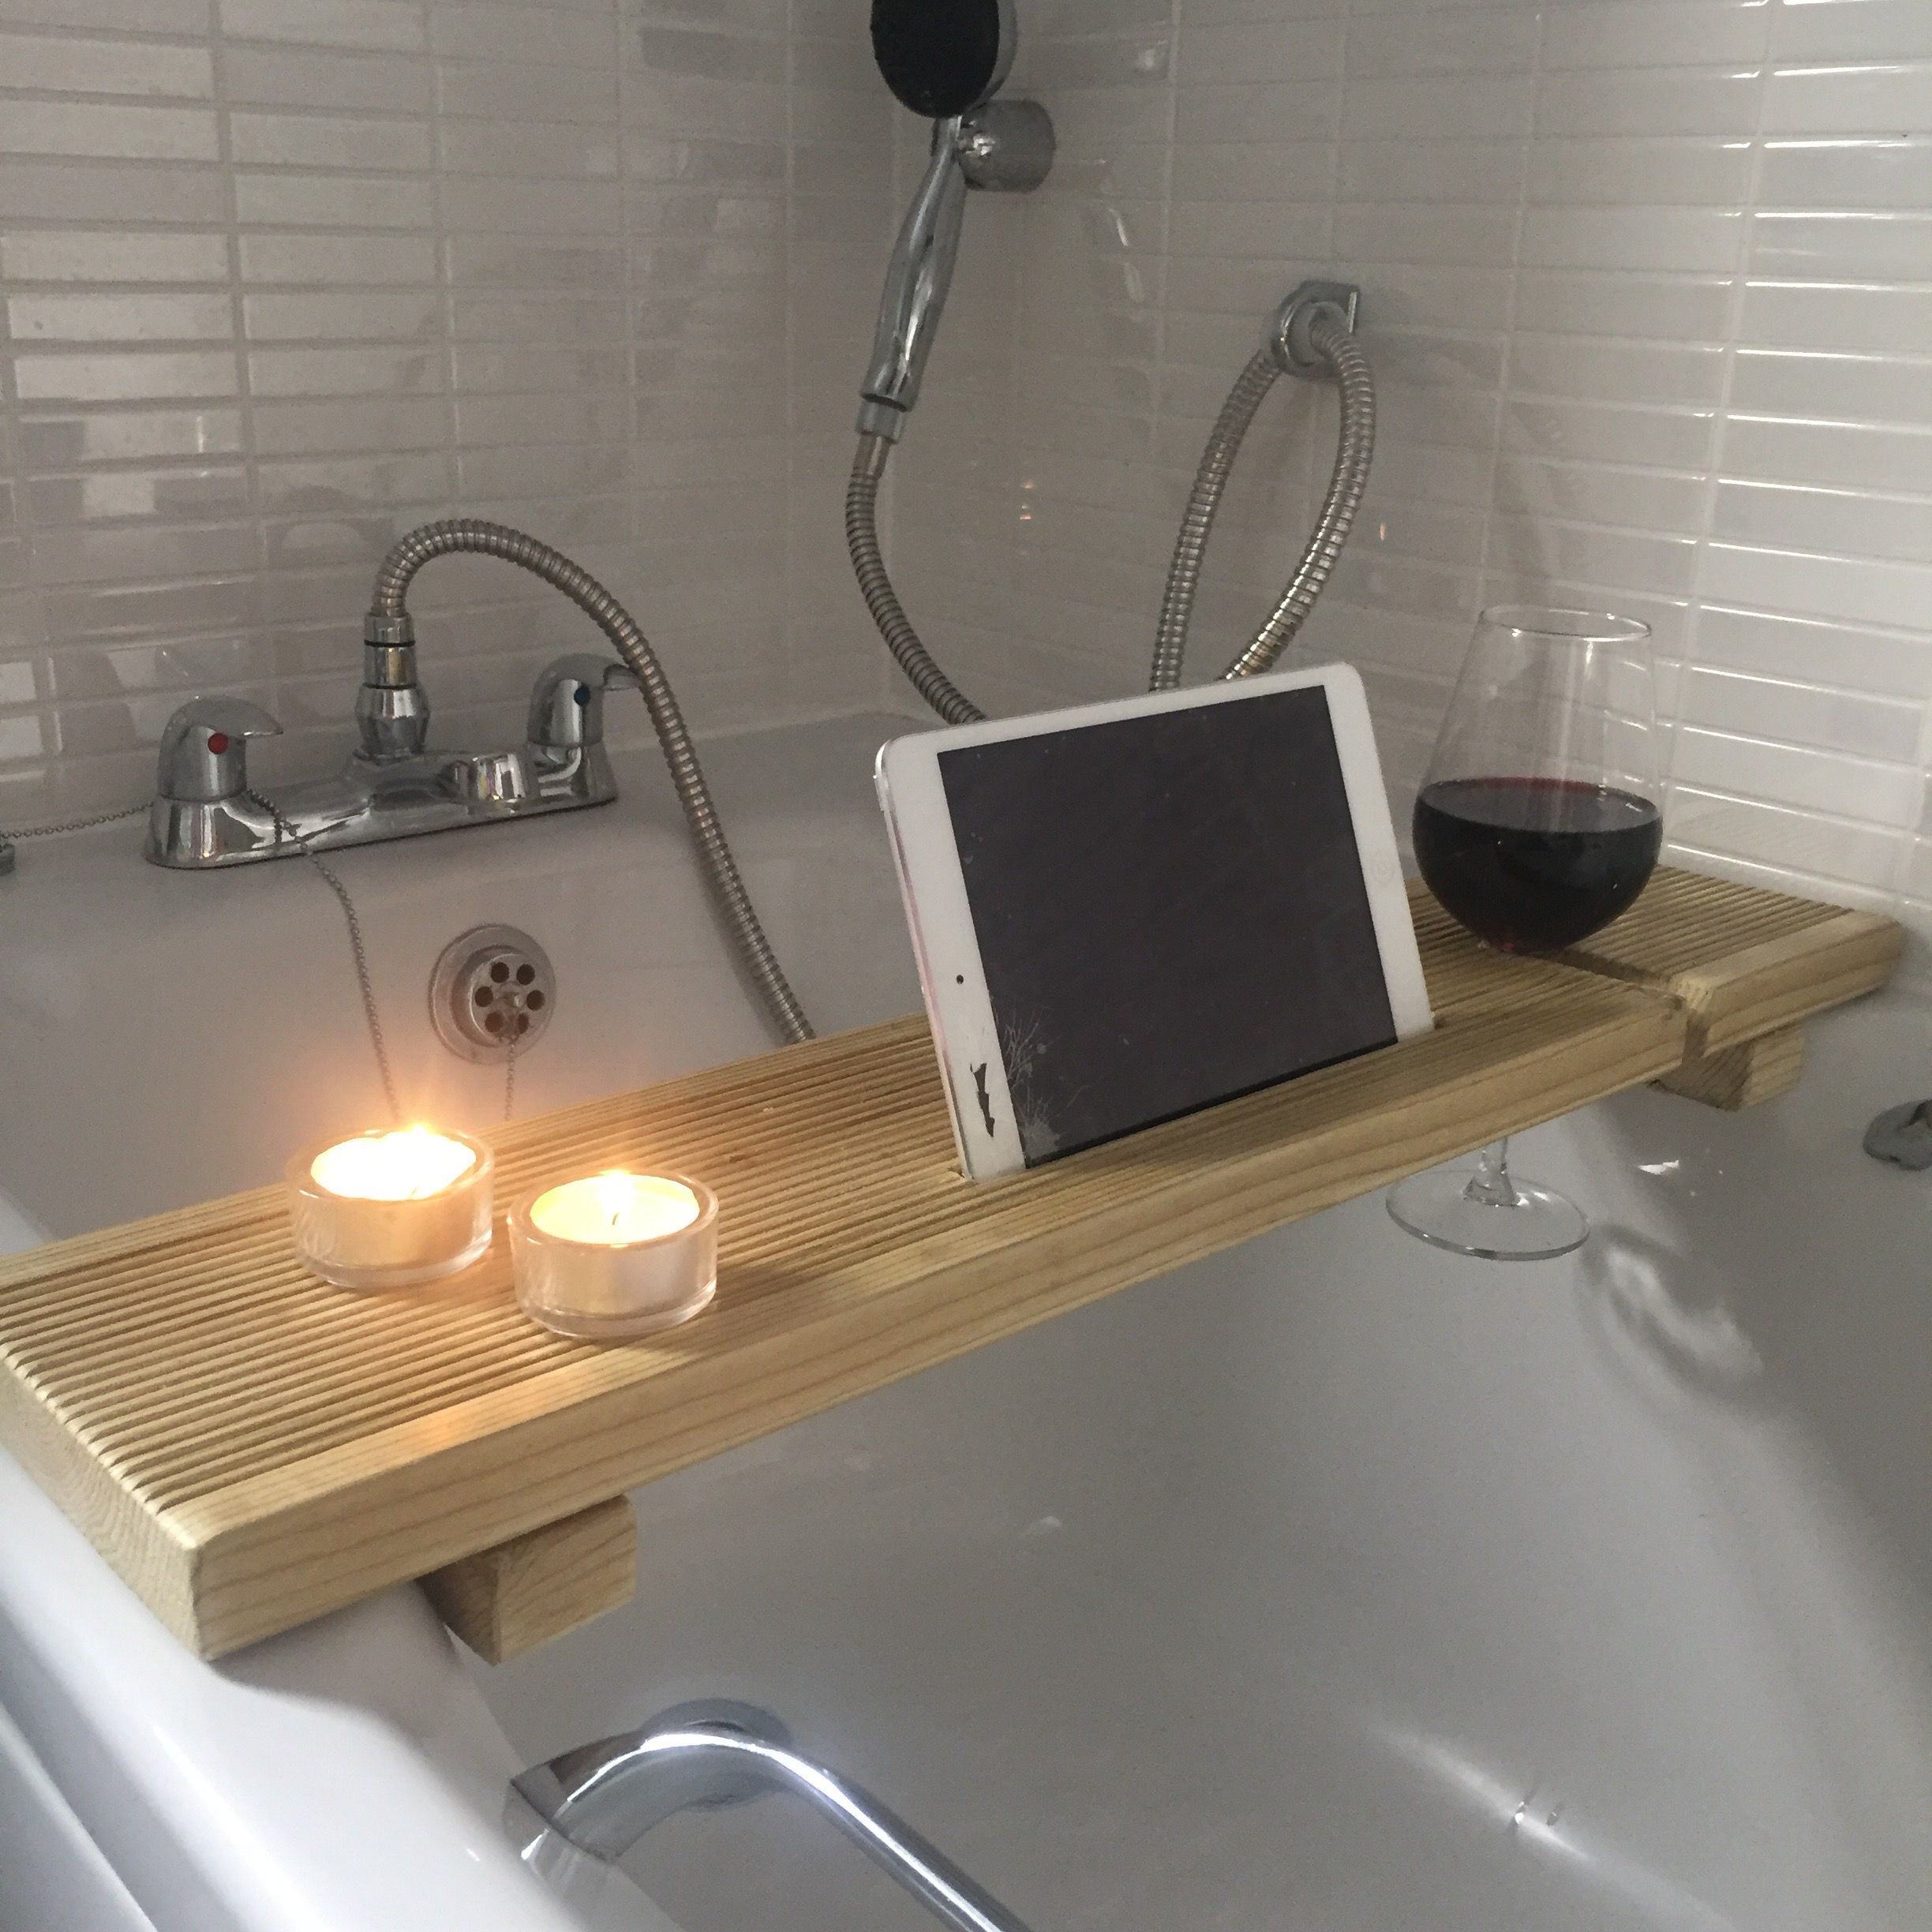 "This Mum makes… A Bath Caddy"" These have been all over Facebook in ..."